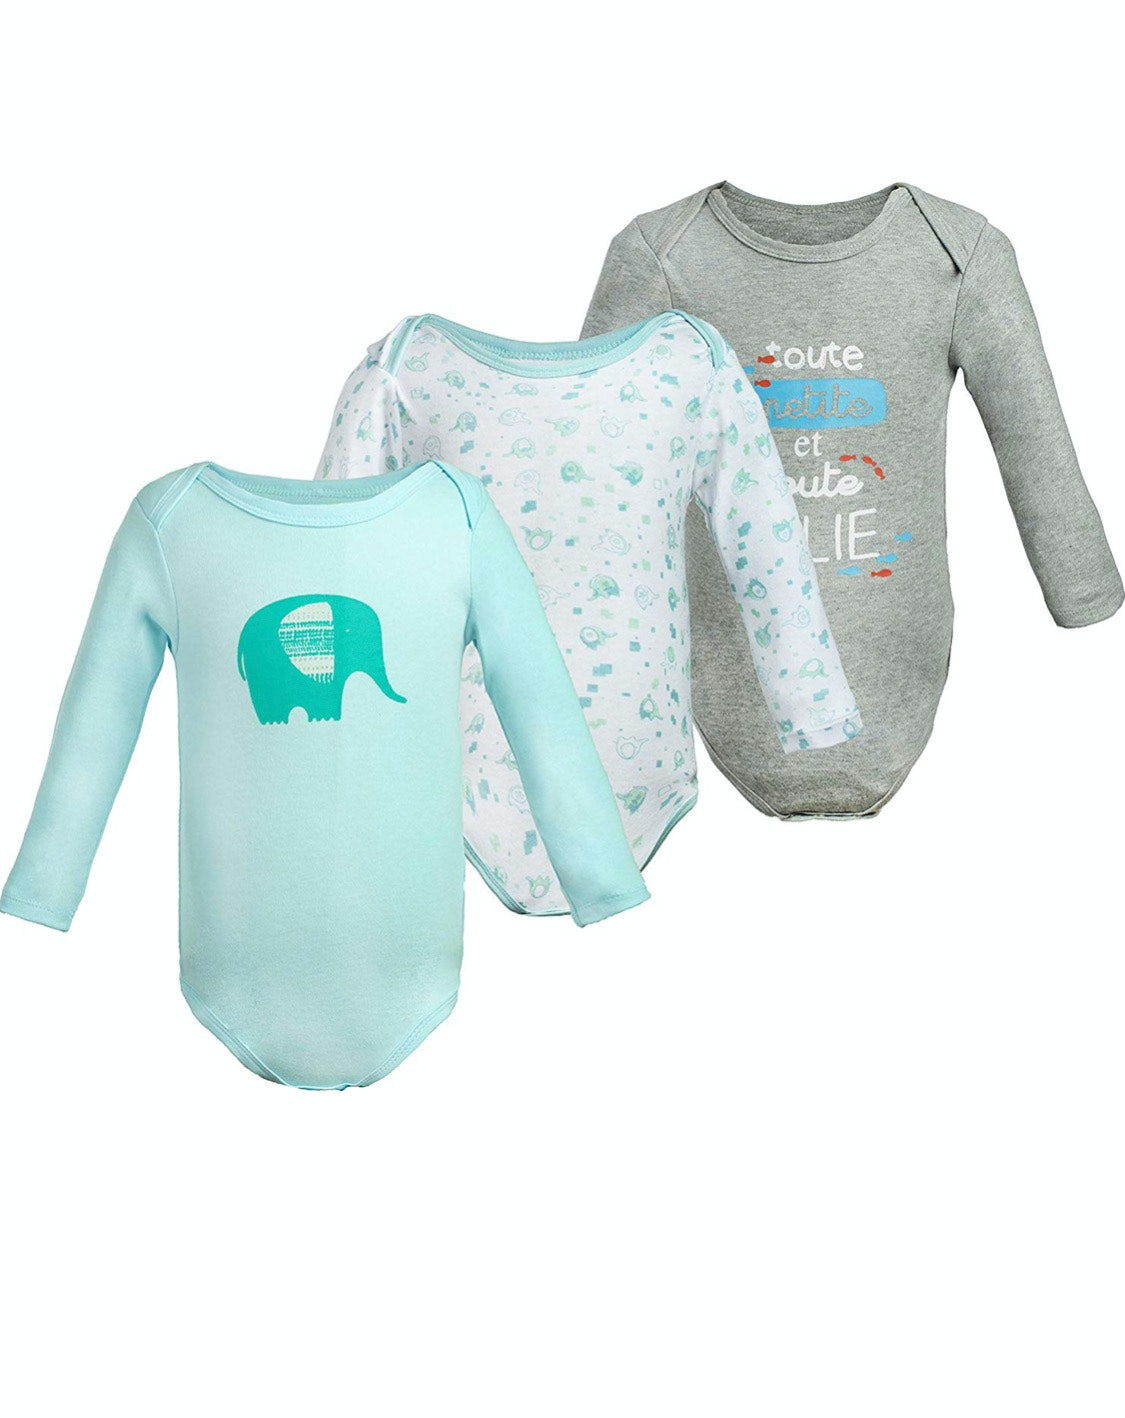 7bd9d40e2 Prime Day Baby Clothes Will Help Stock Your Kid's Wardrobe